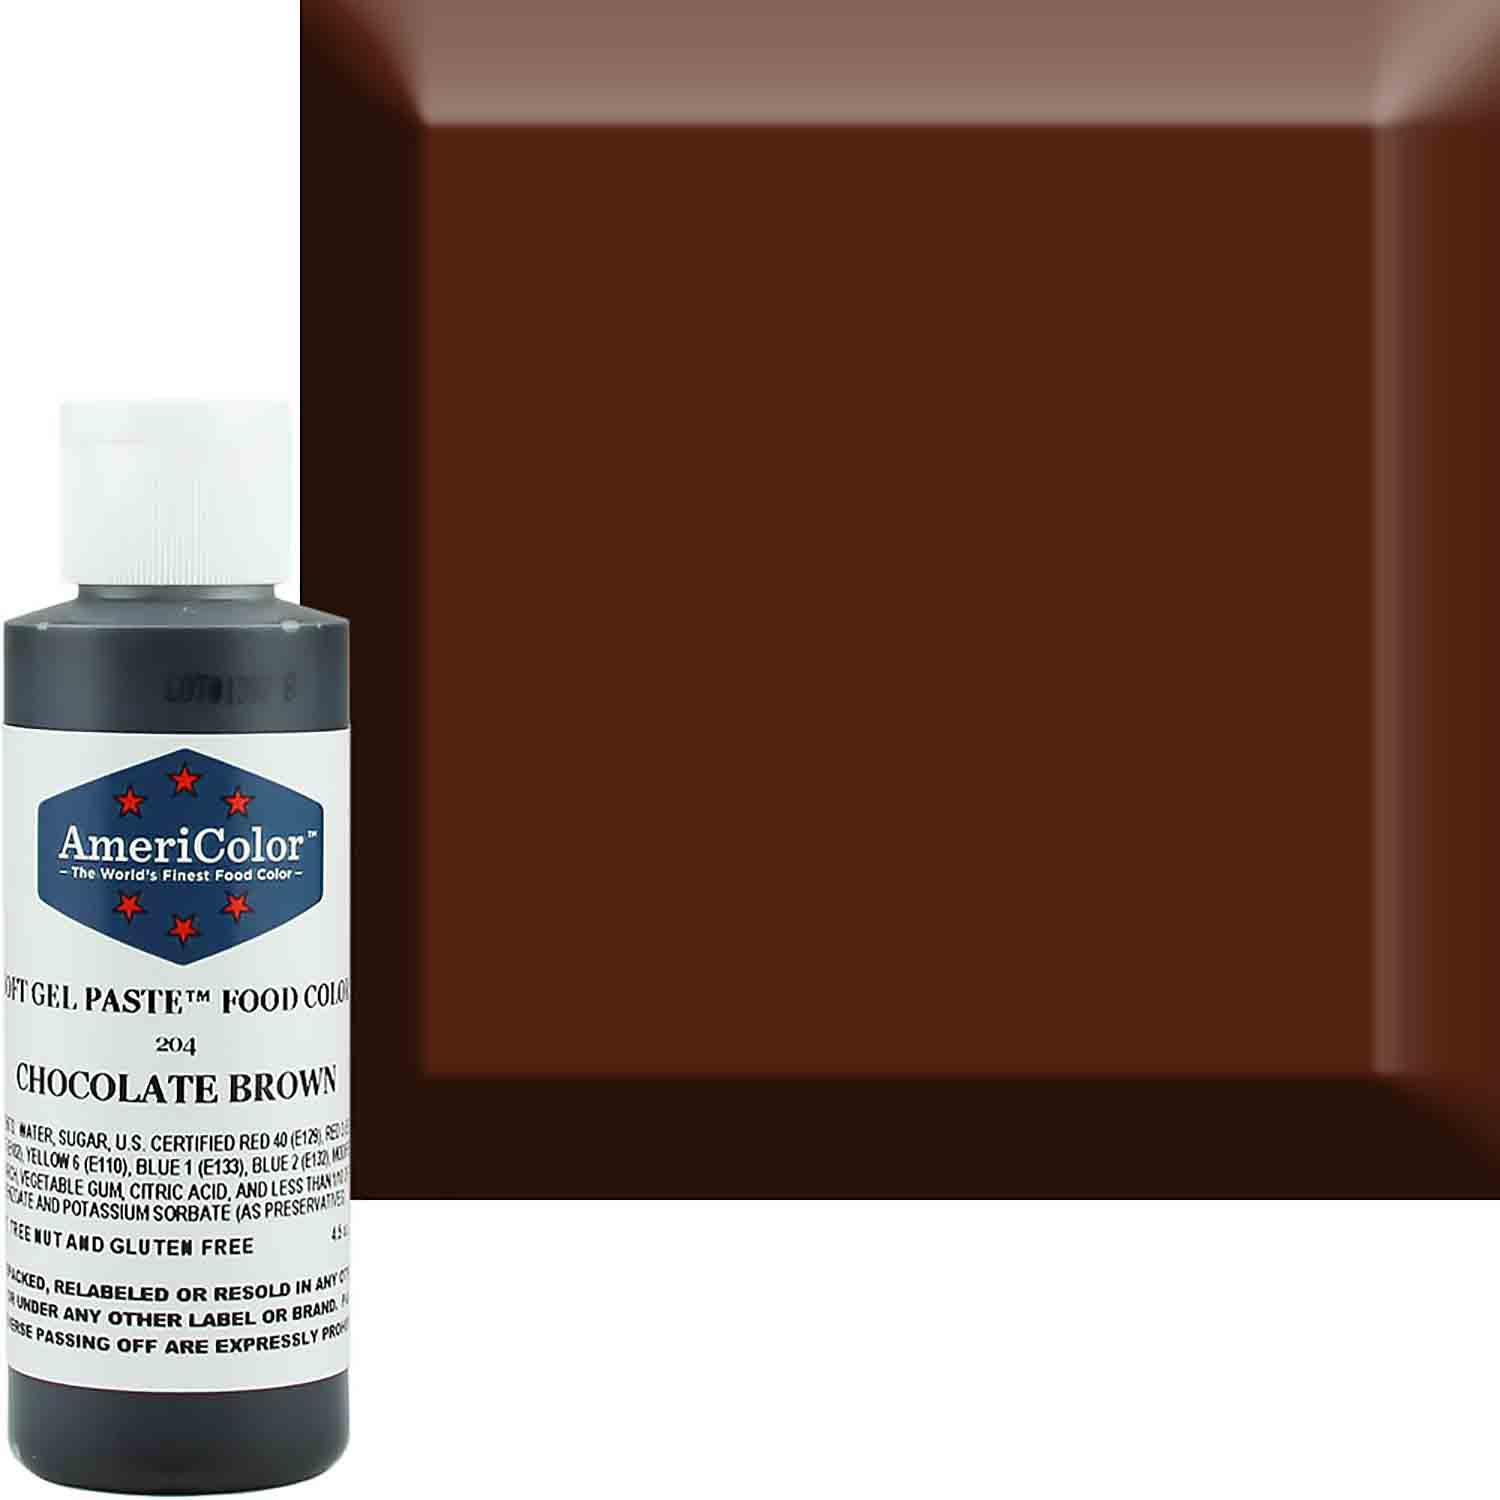 Chocolate Brown Soft Gel Paste™ Food Color